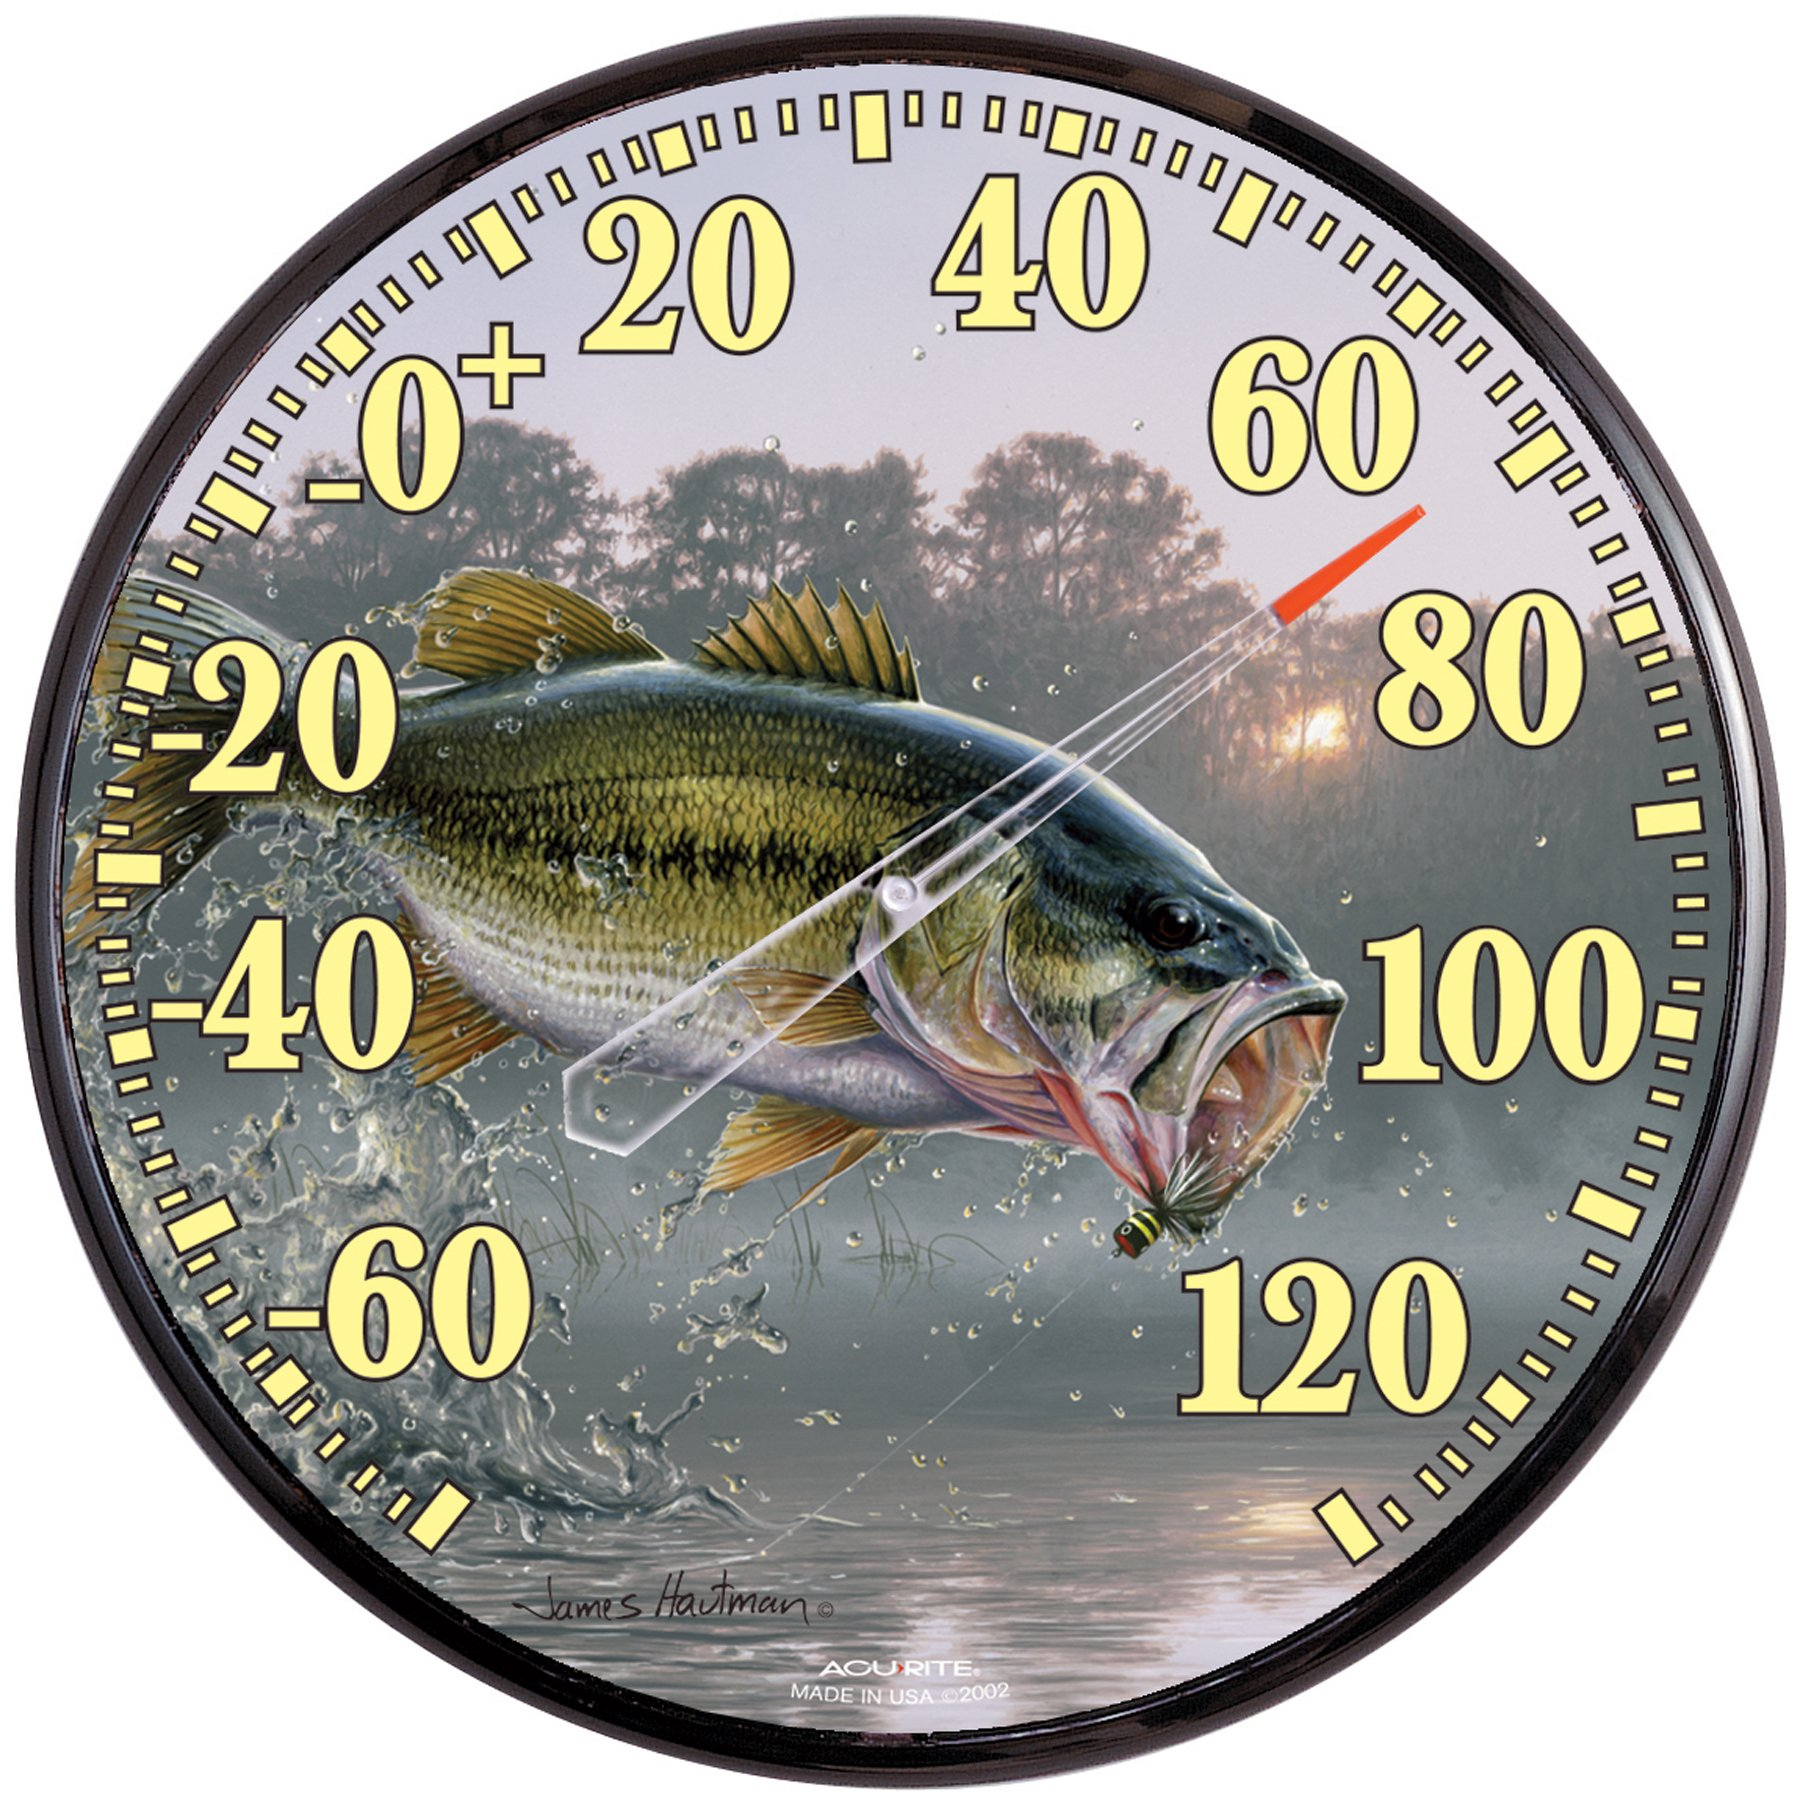 AcuRite 01776 12.5-Inch Wall Thermometer, Bass